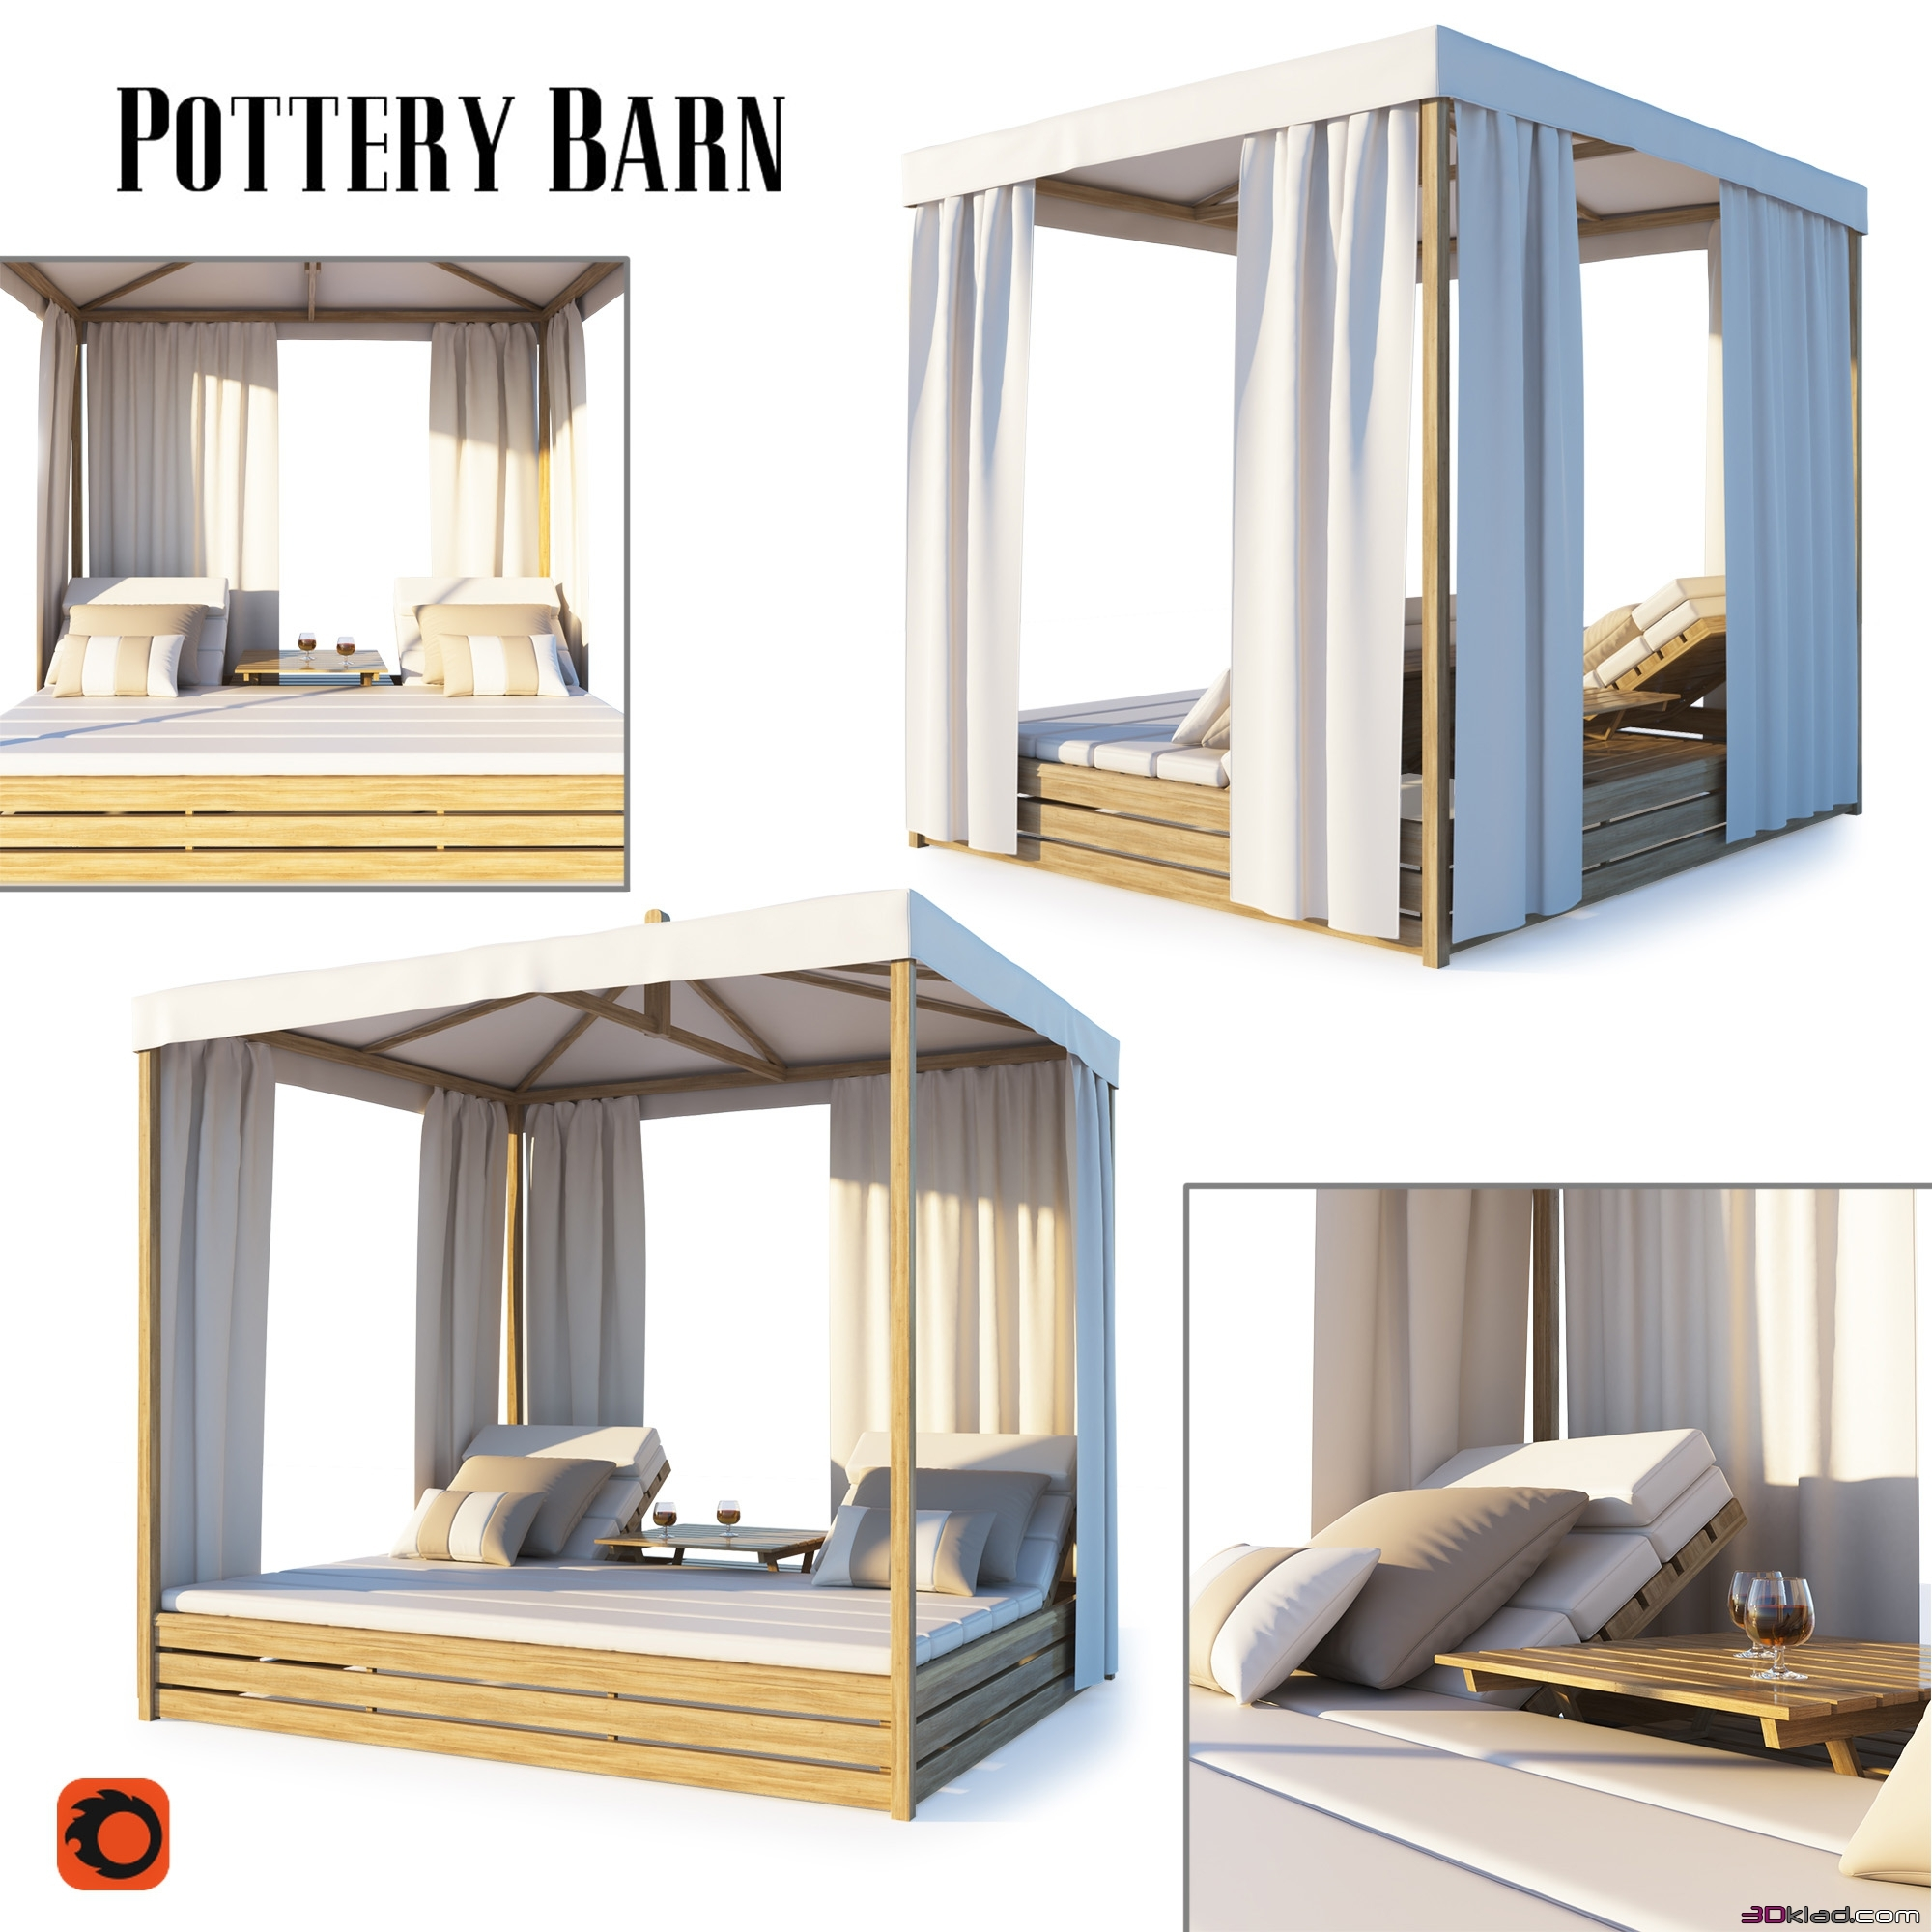 pottery barn madera teak daybed 3d models